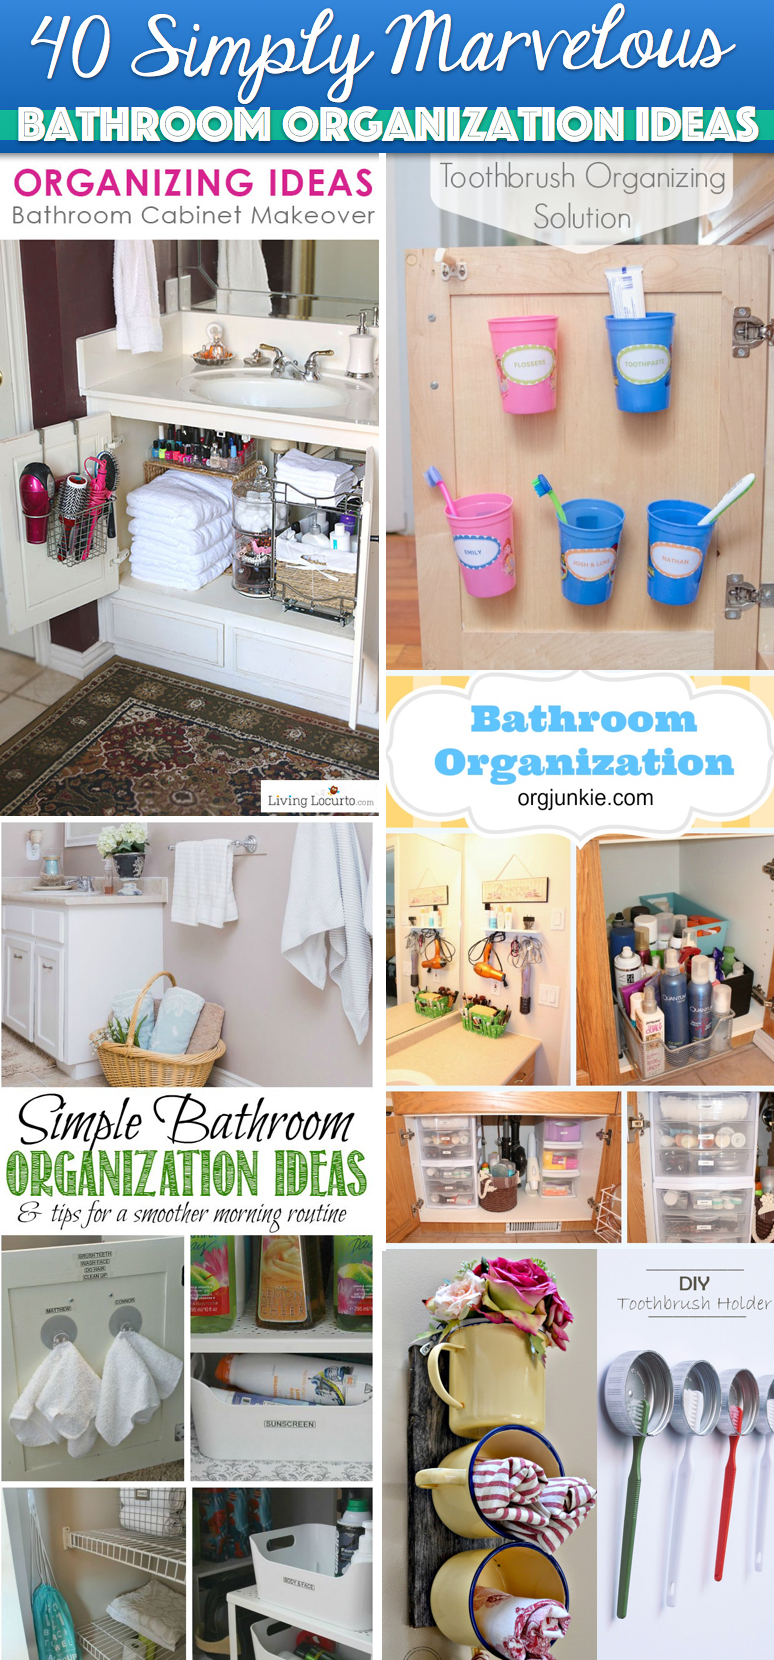 40 Simply Marvelous Bathroom Organization Ideas To Get Rid Of All That Clutter Cute Diy Projects